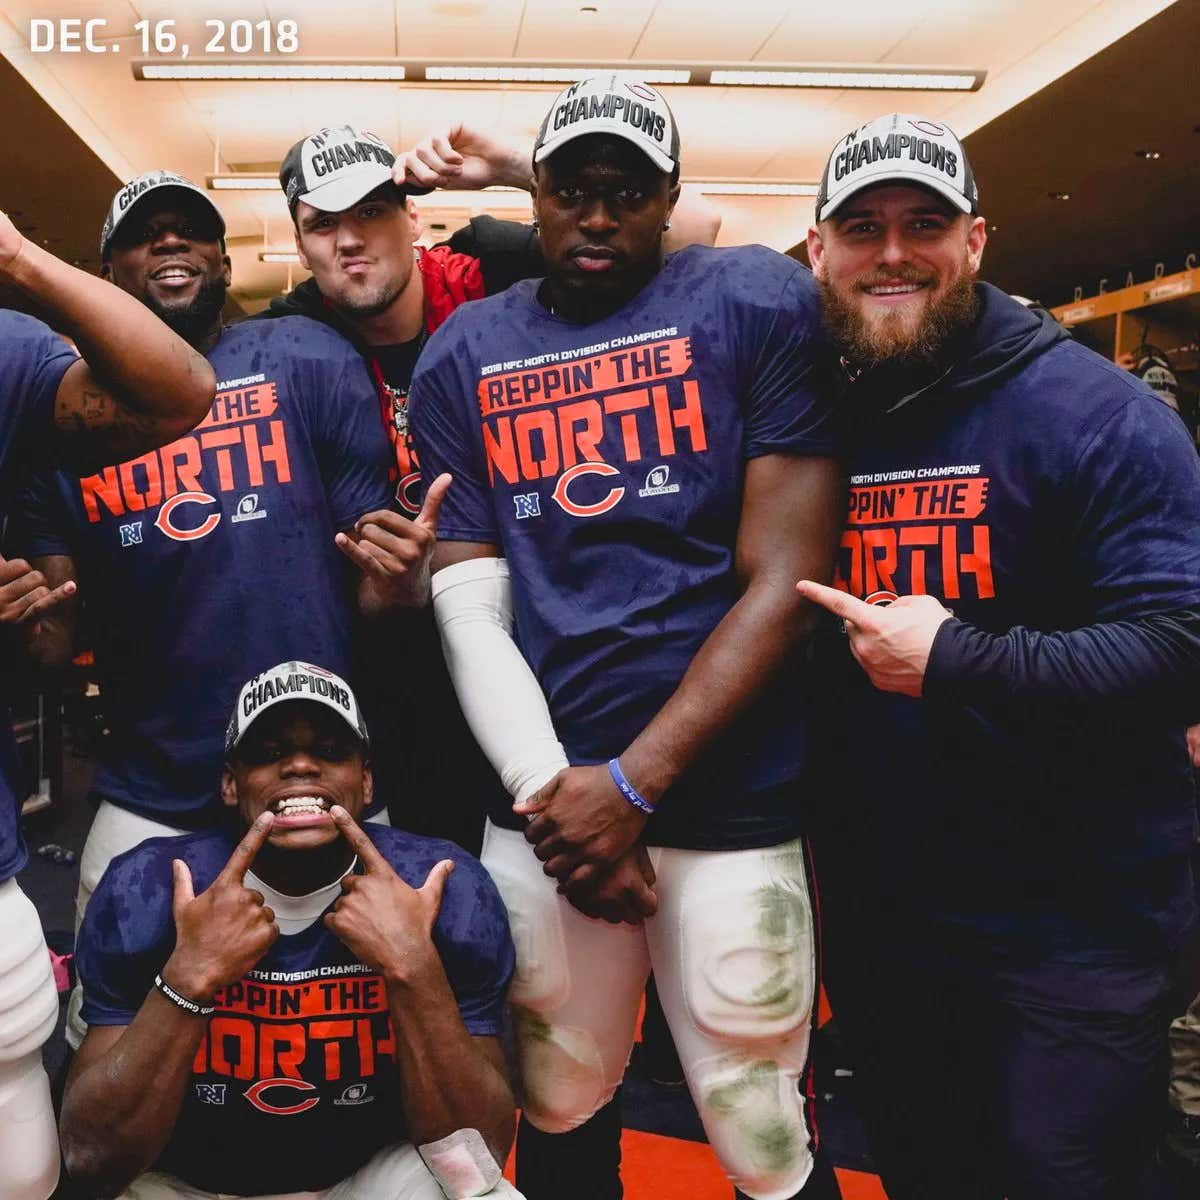 366ec4f3d3d97 ReCapping An All Gas No Brakes Chicago Bears Victory Monday ...